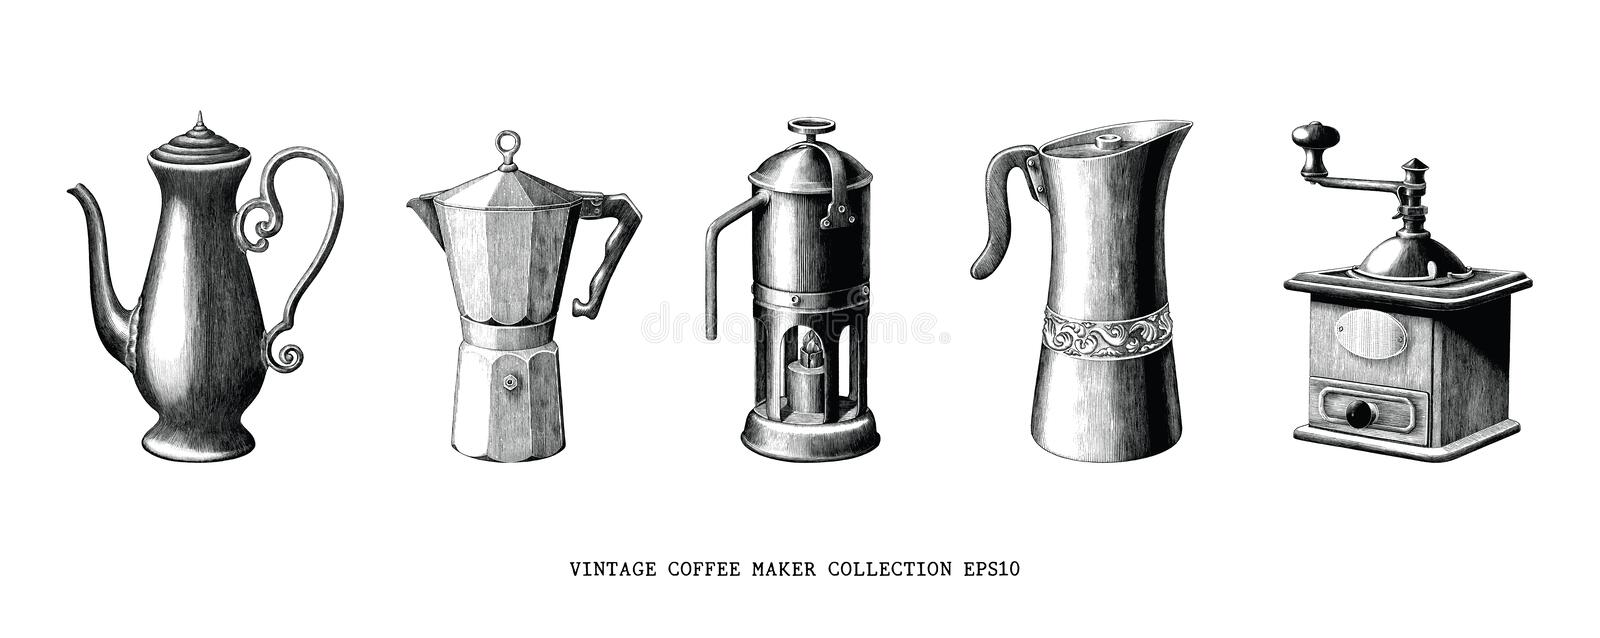 Vintage coffee maker collection hand draw black and white clip art isolated on white background. Collection set of coffee shop royalty free illustration